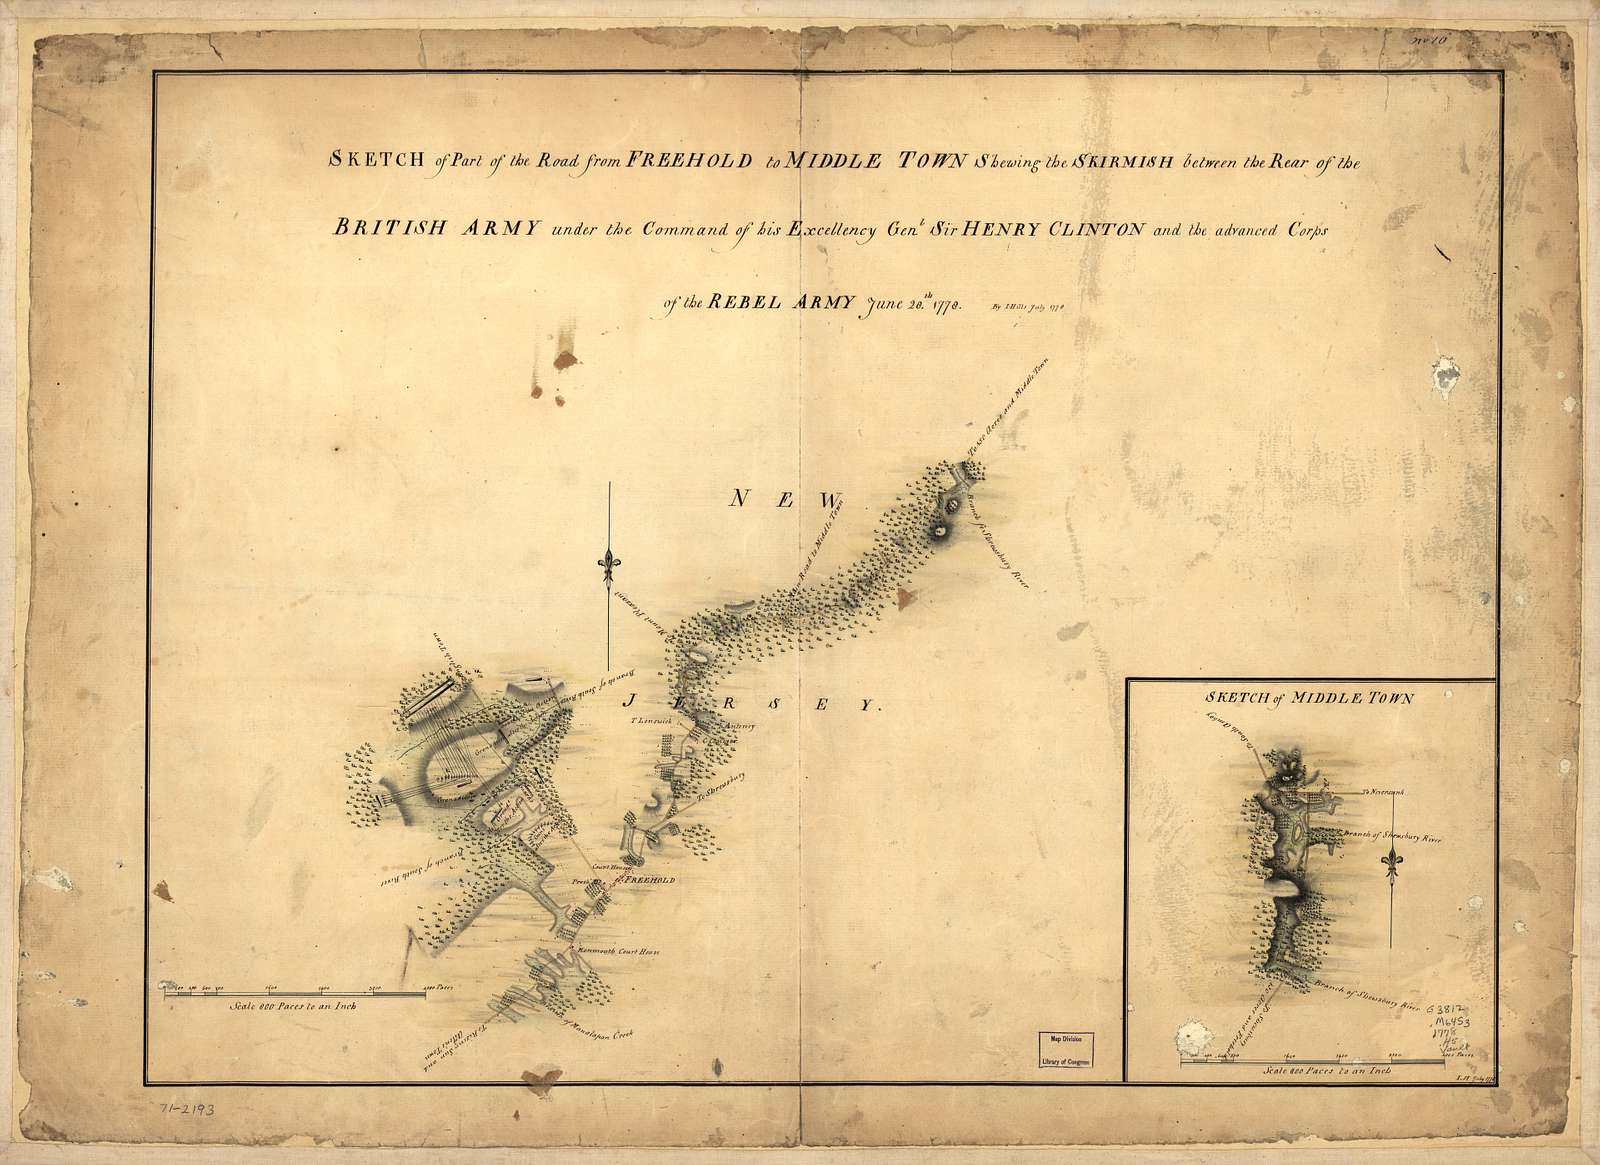 Sketch of part of the road from Freehold to Middle Town shewing the skirmish between the rear of the British Army under the command of His Excellency Genl. Sir Henry Clinton and the advanced corps of the rebel army, June 28th. 1778. Sketch of Middle Town.